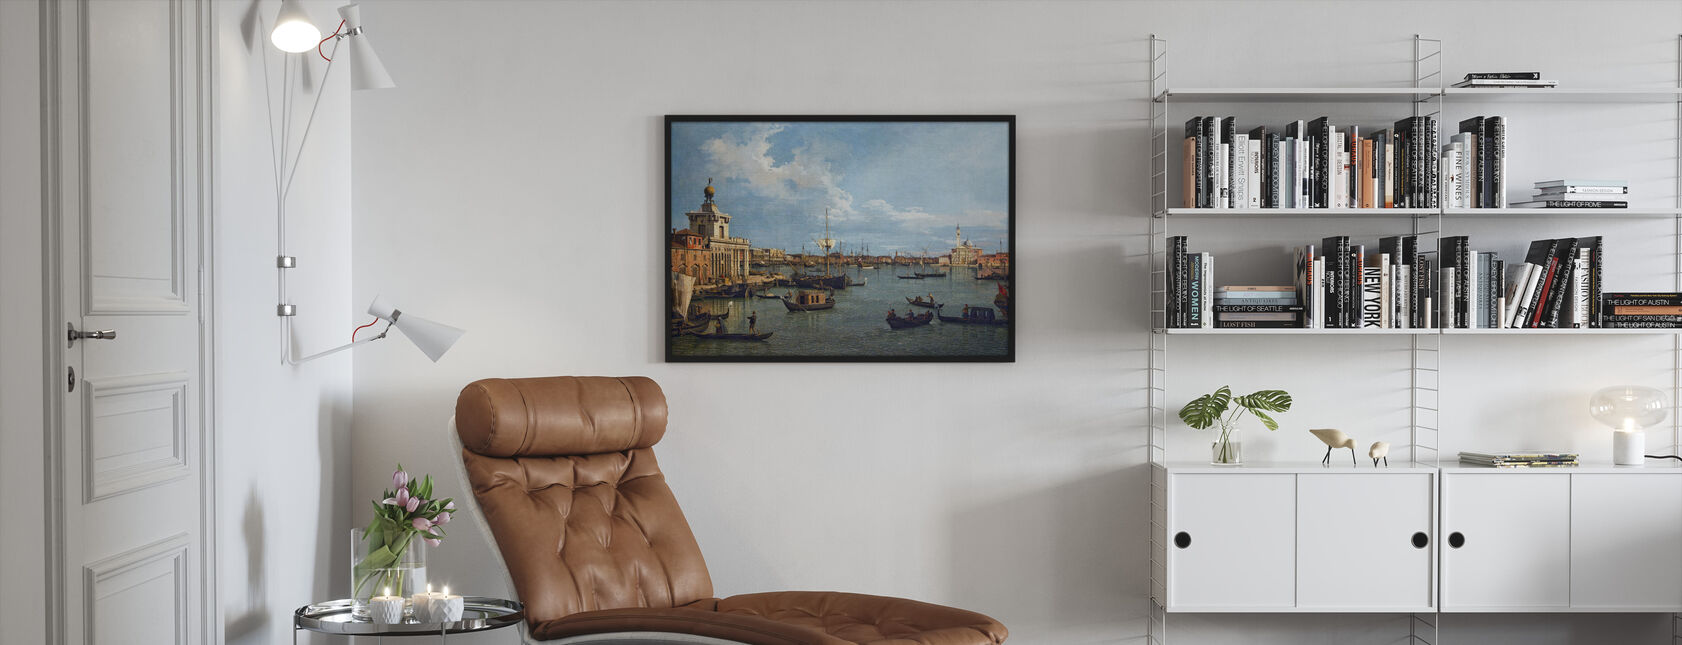 San Marco Basin - Canaletto - Framed print - Living Room